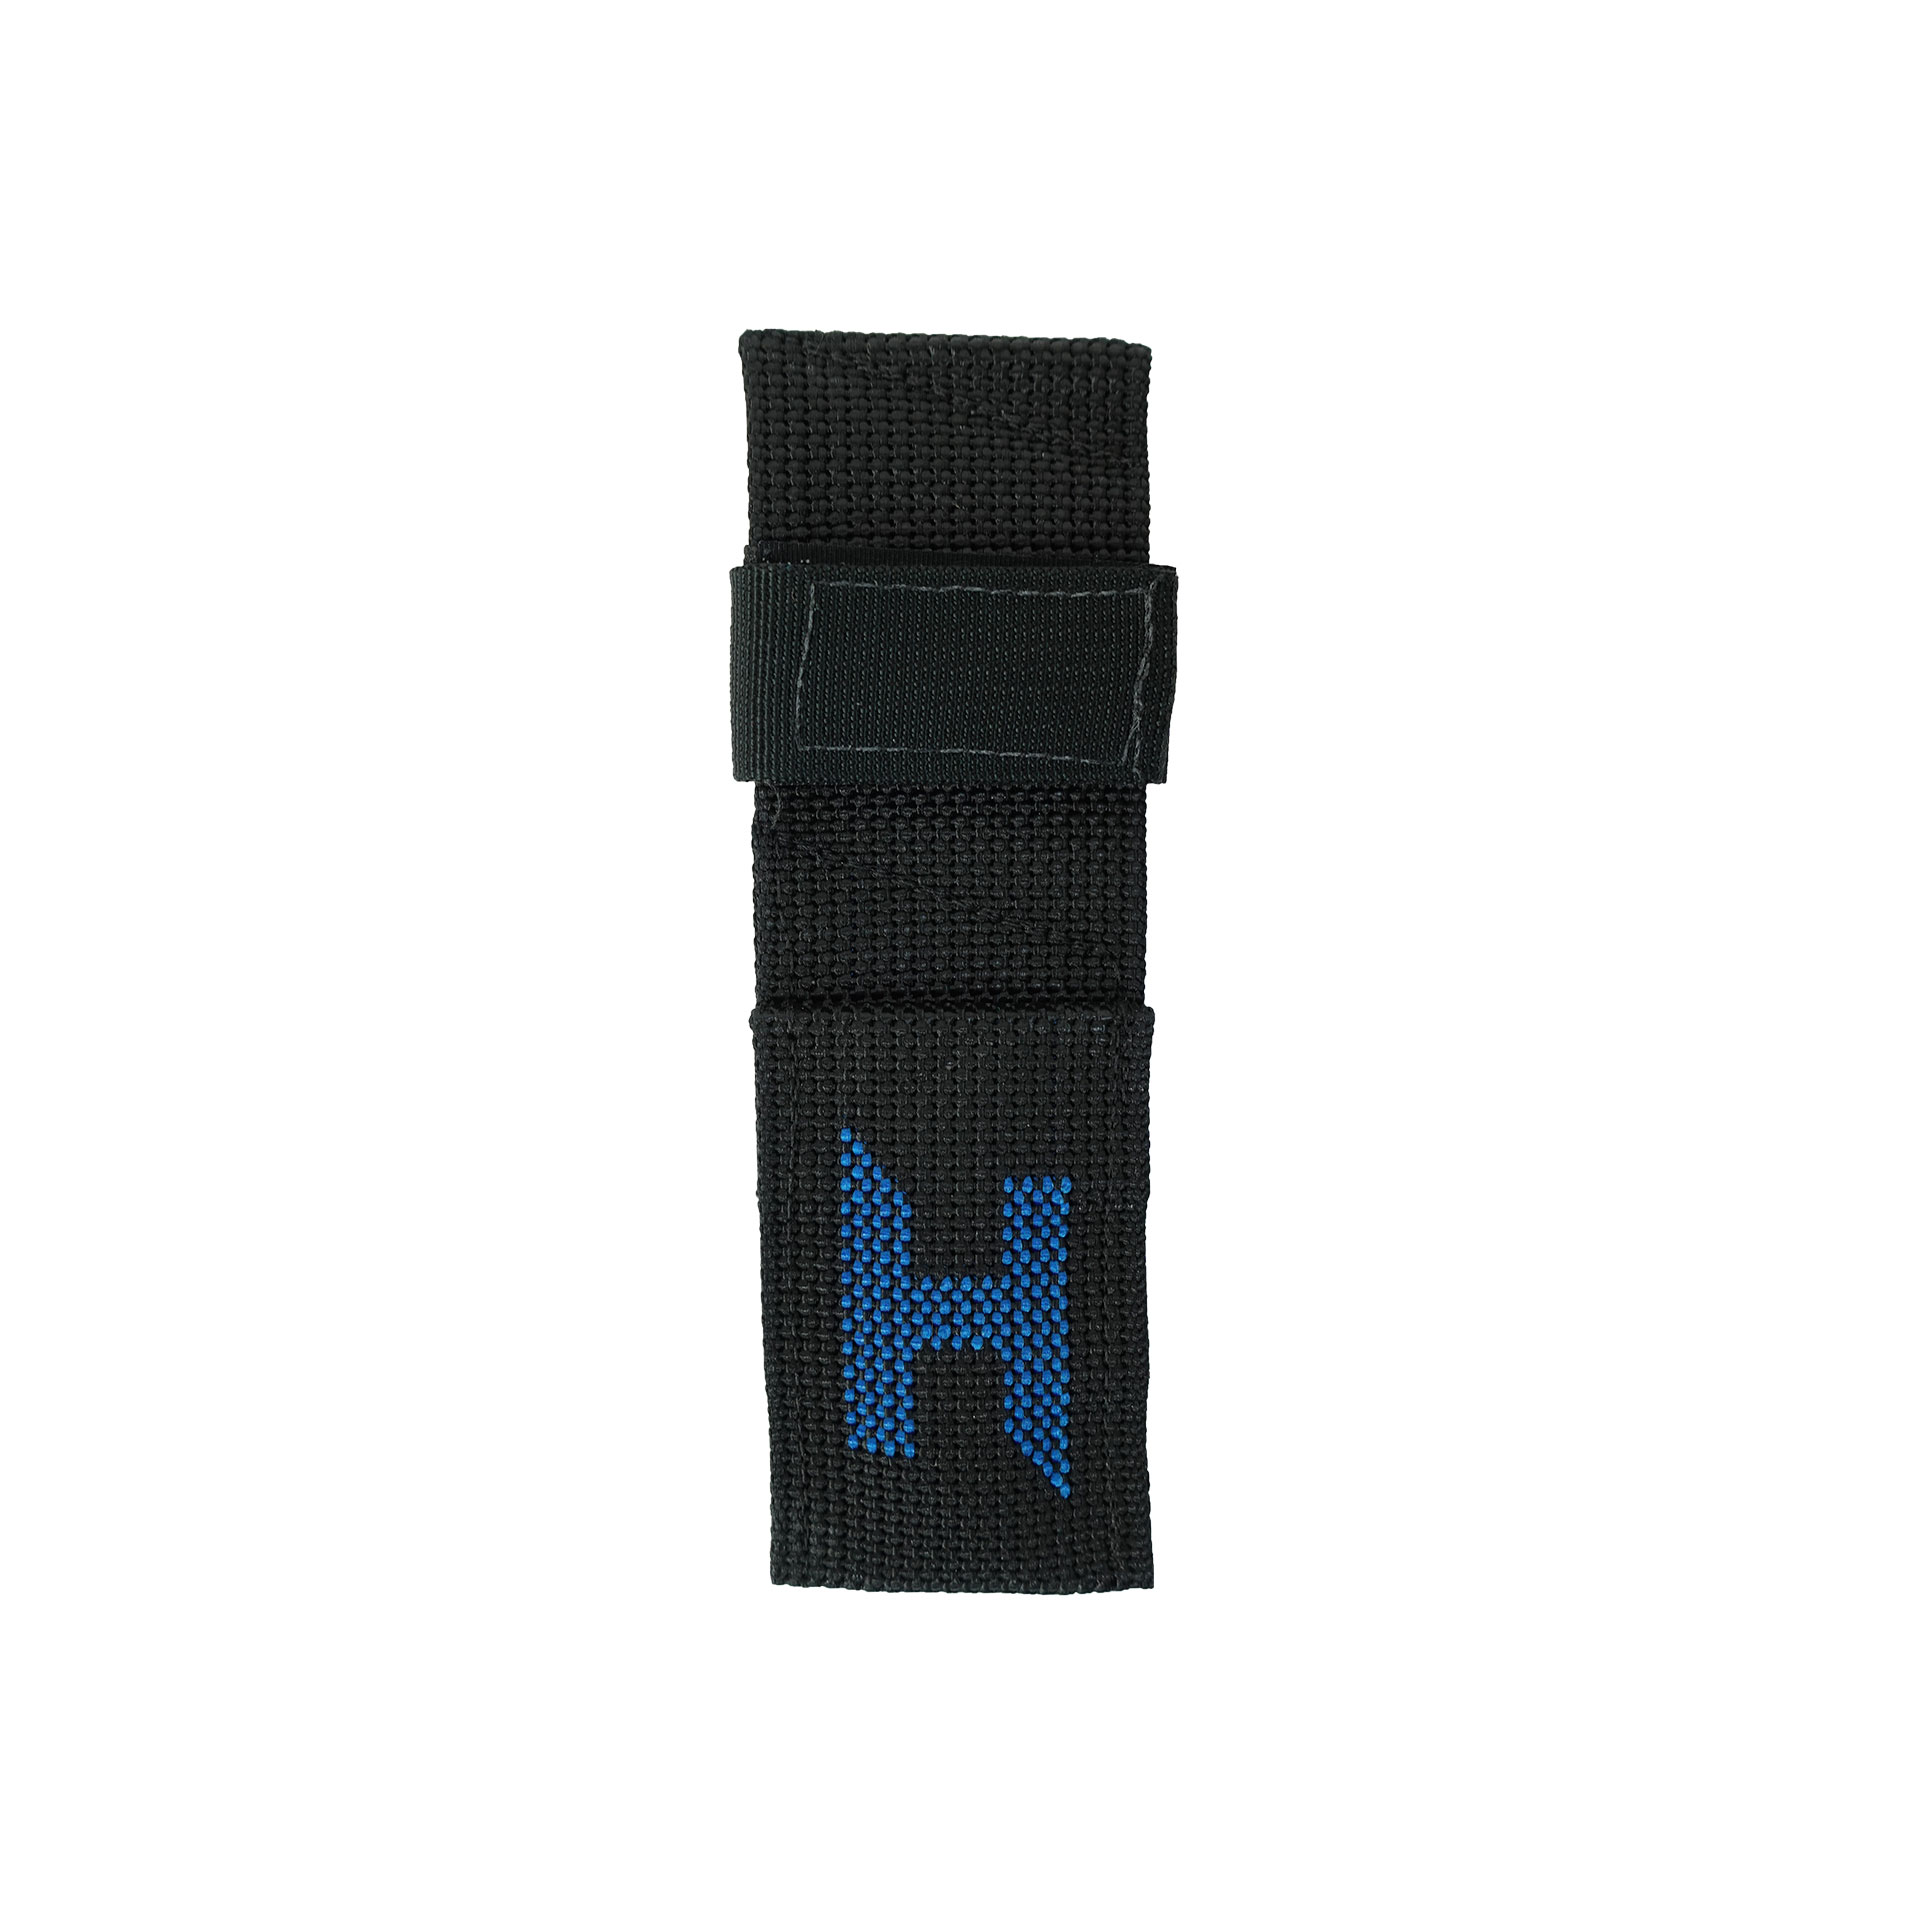 Replacement Sheath